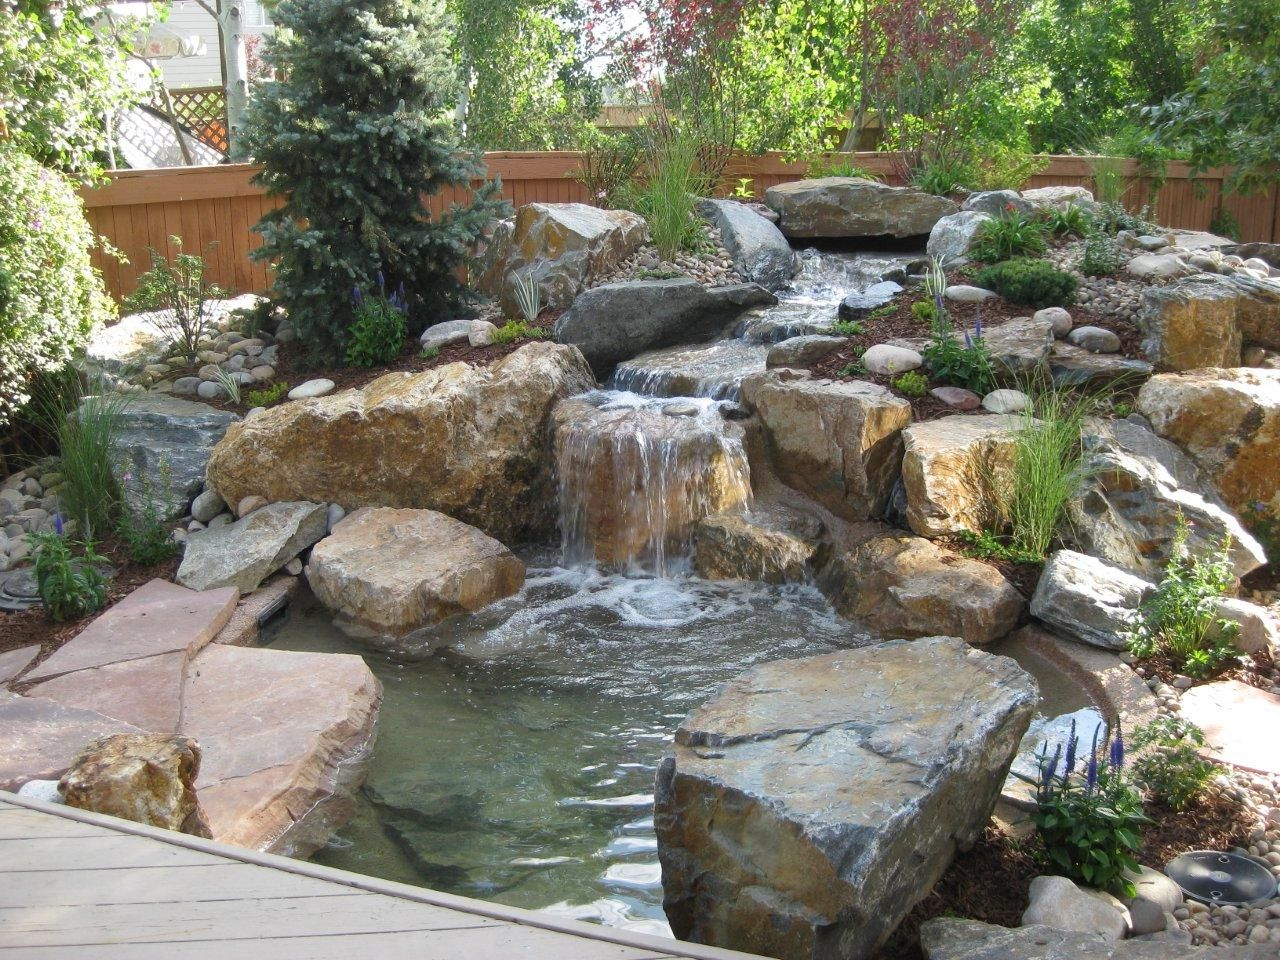 -backyard-pond 3019 543n65wyer6t5wure